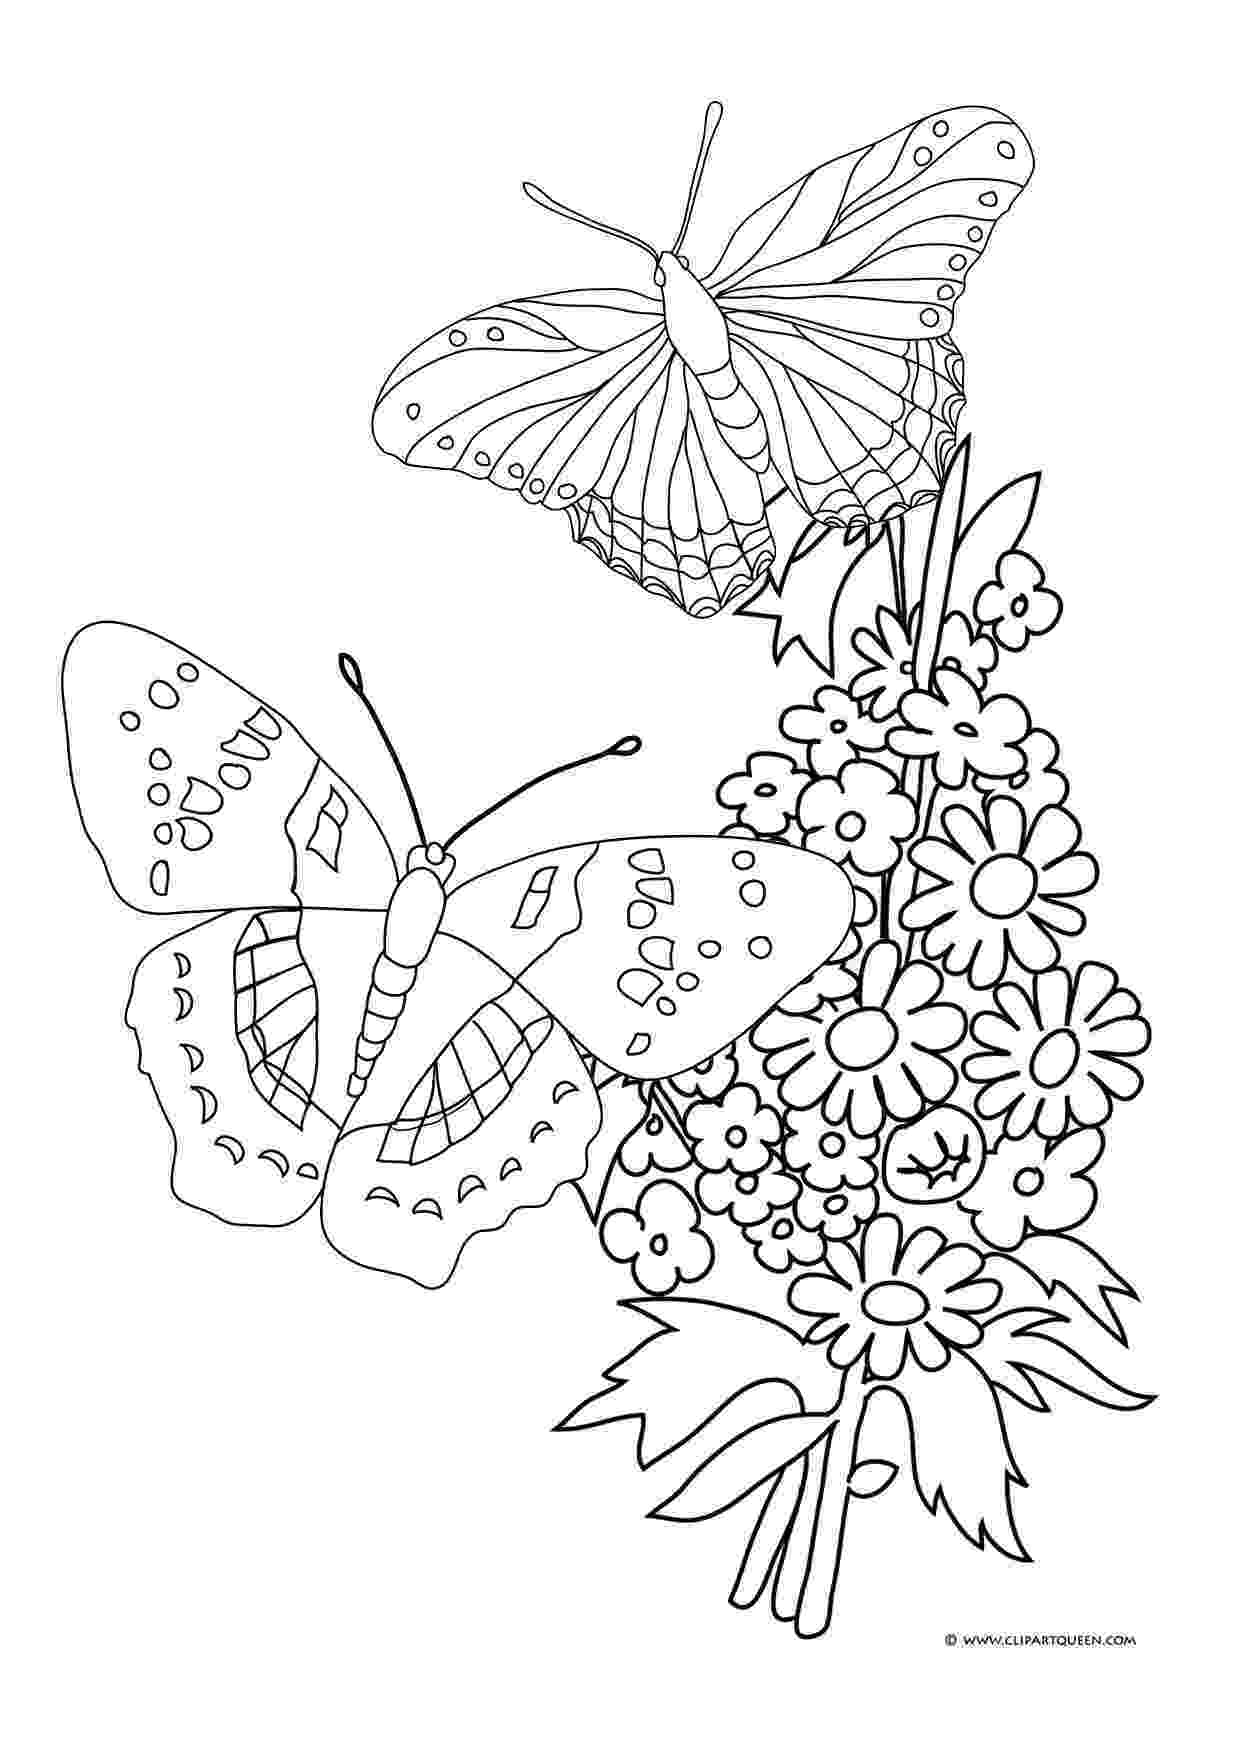 coloring pages of butterflies and flowers butterfly coloring pages pages coloring flowers and butterflies of